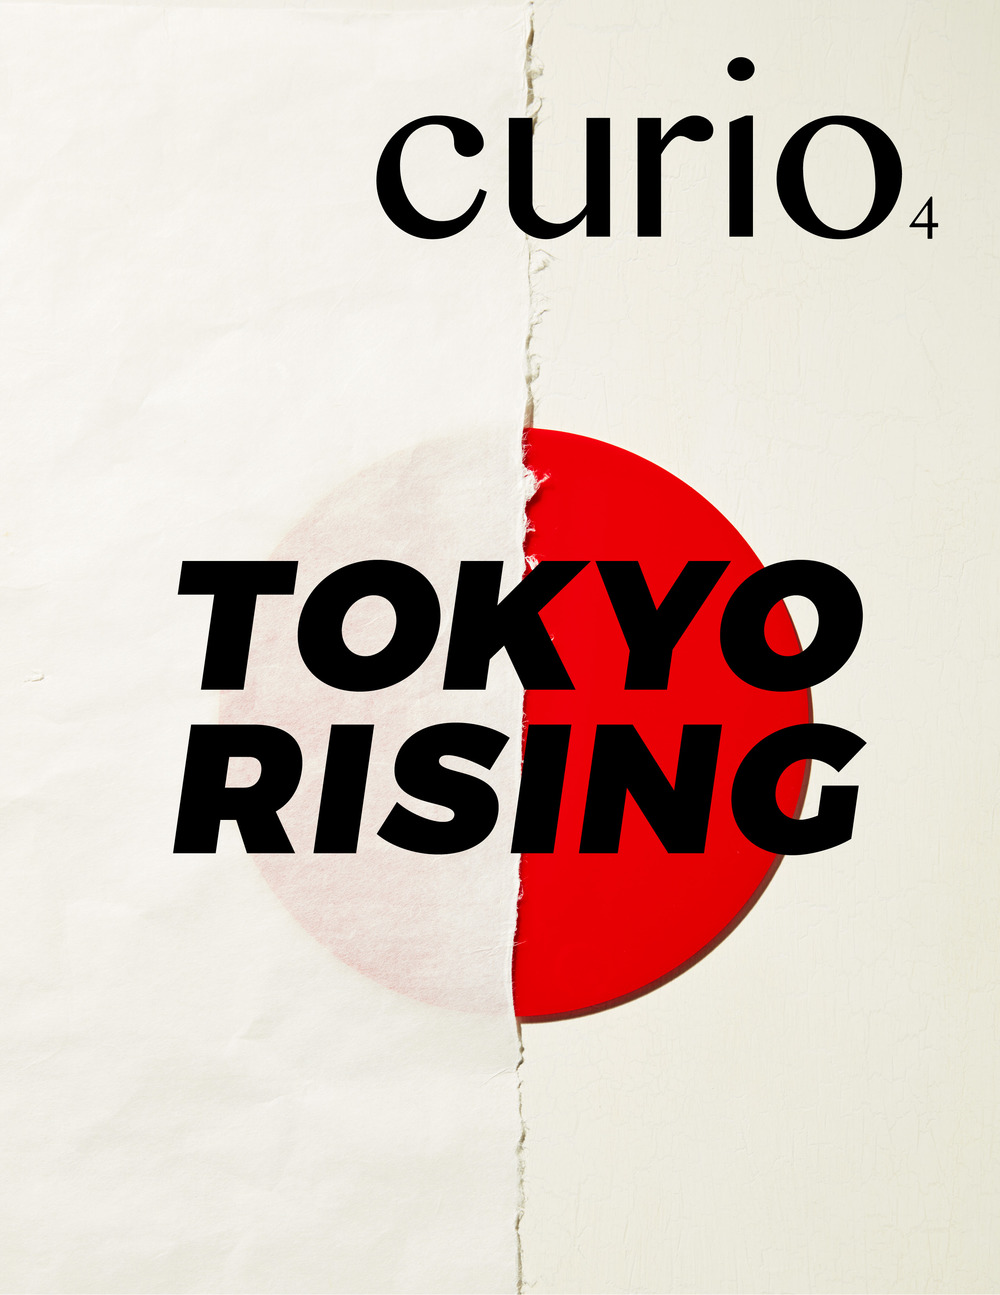 ISSUE 4: TOKYO RISING